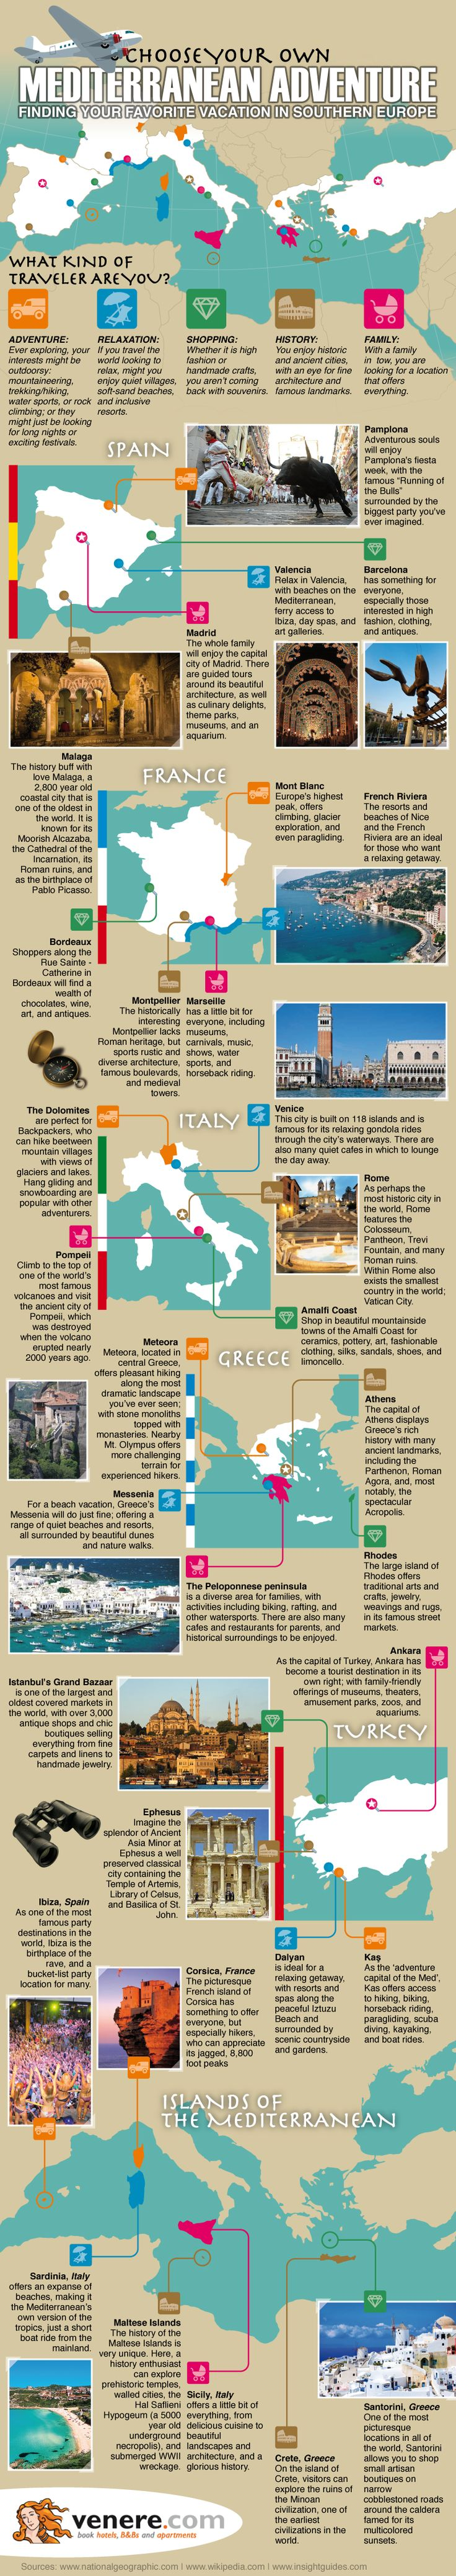 Choose Your Own Mediterranean Adventure   #Adventure #Travel #infographic